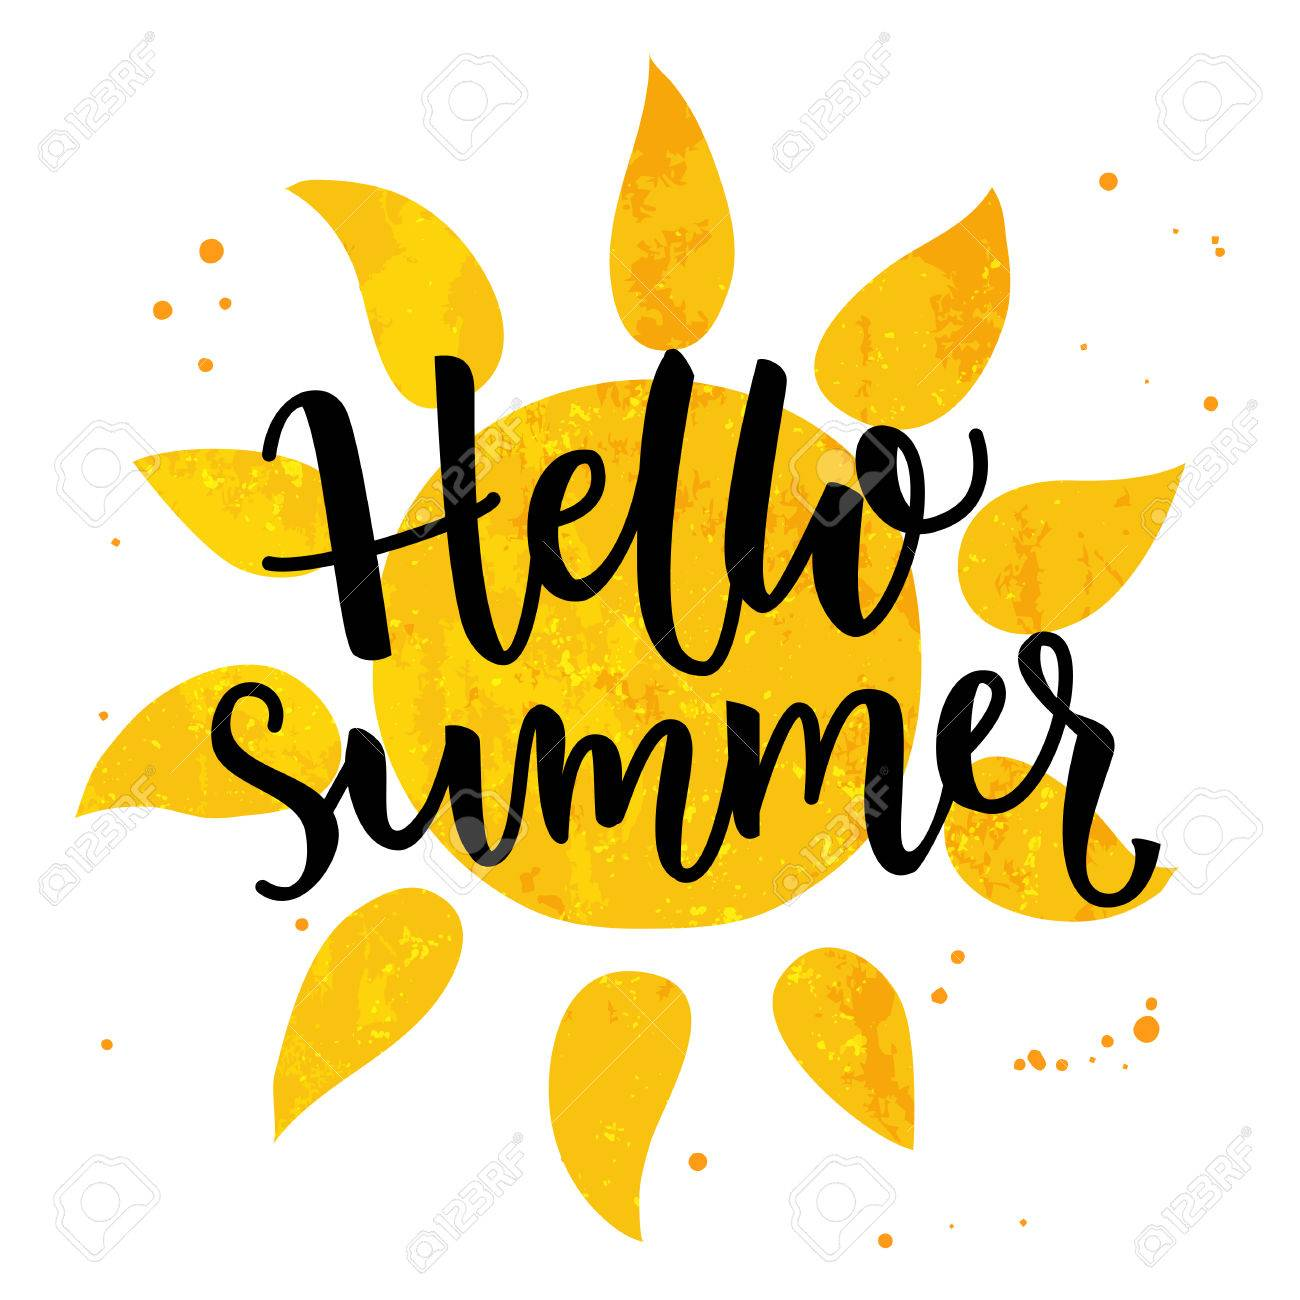 Hello summer banner. Typography poster with sun and lettering.